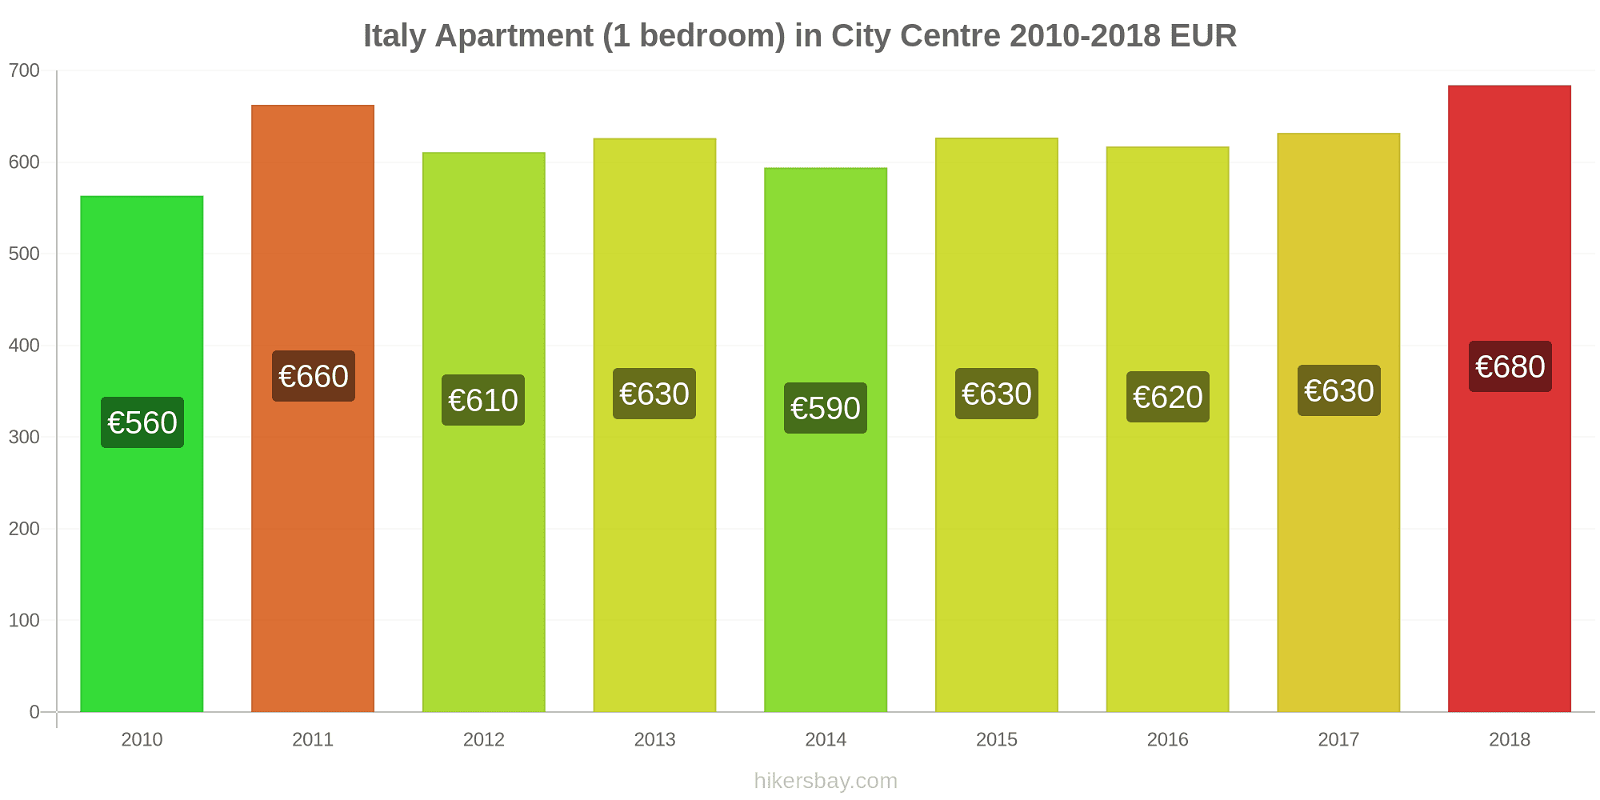 Italy price changes Apartment (1 bedroom) in City Centre hikersbay.com